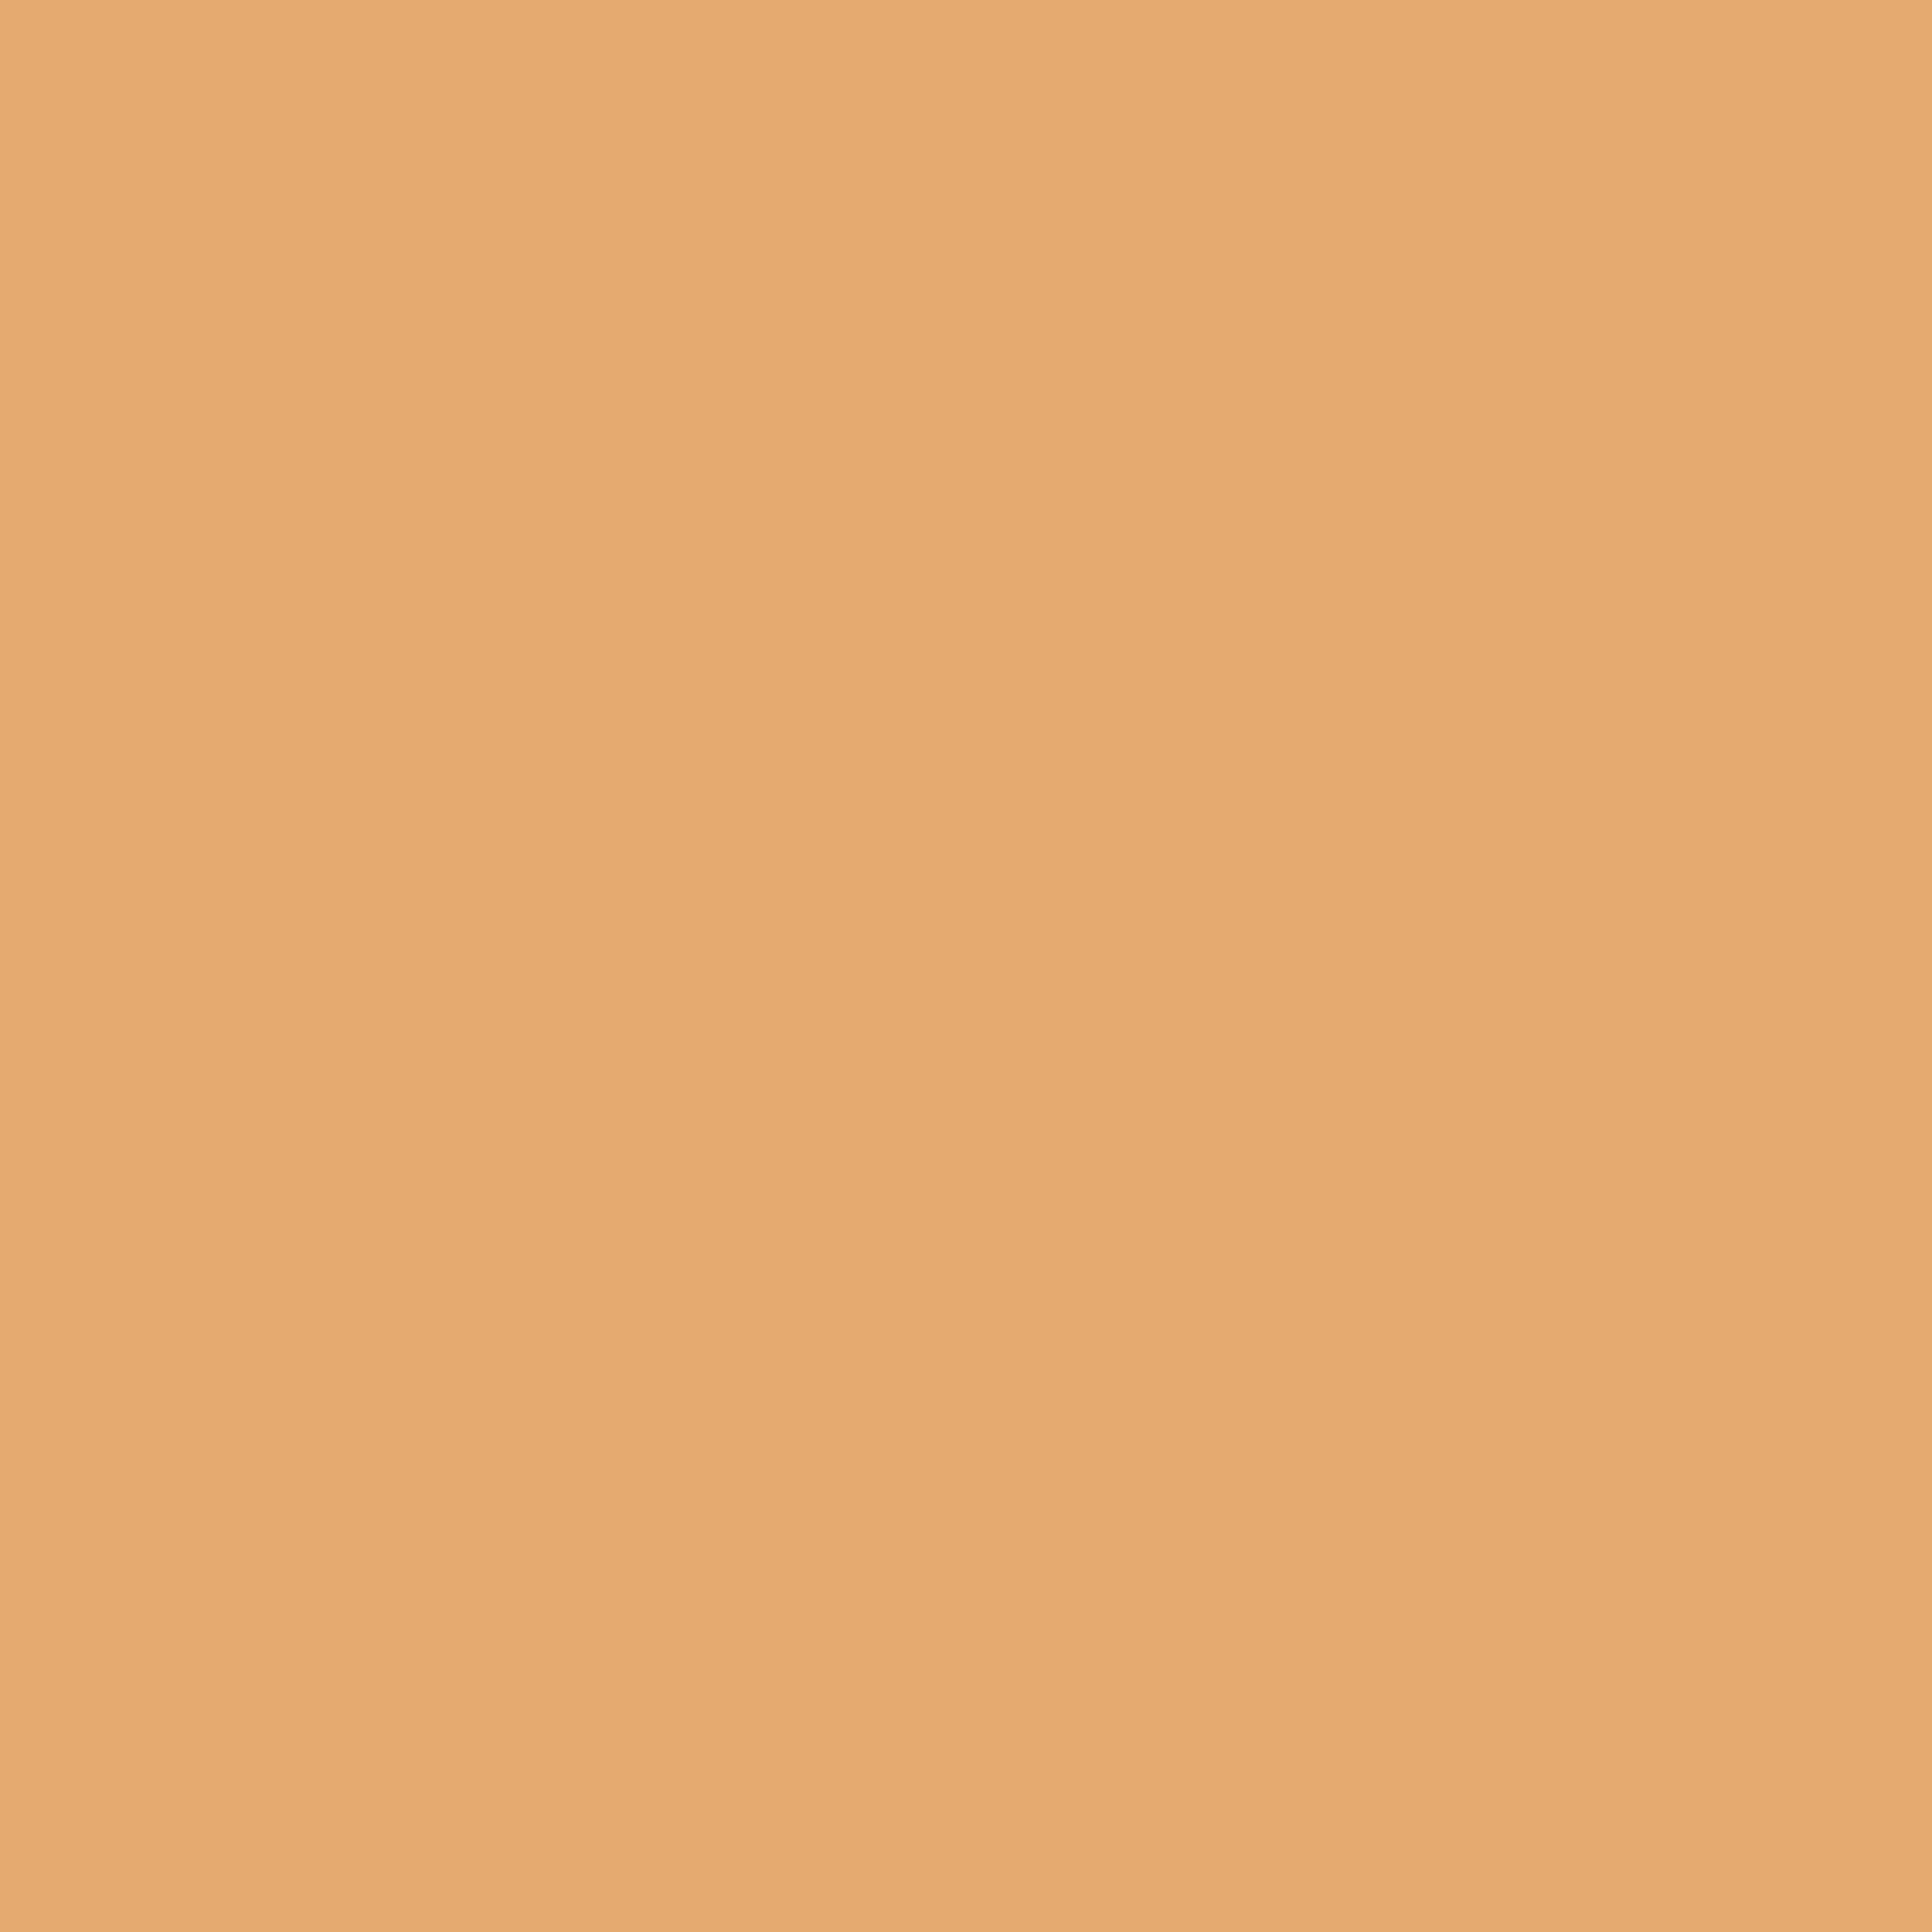 2732x2732 Fawn Solid Color Background